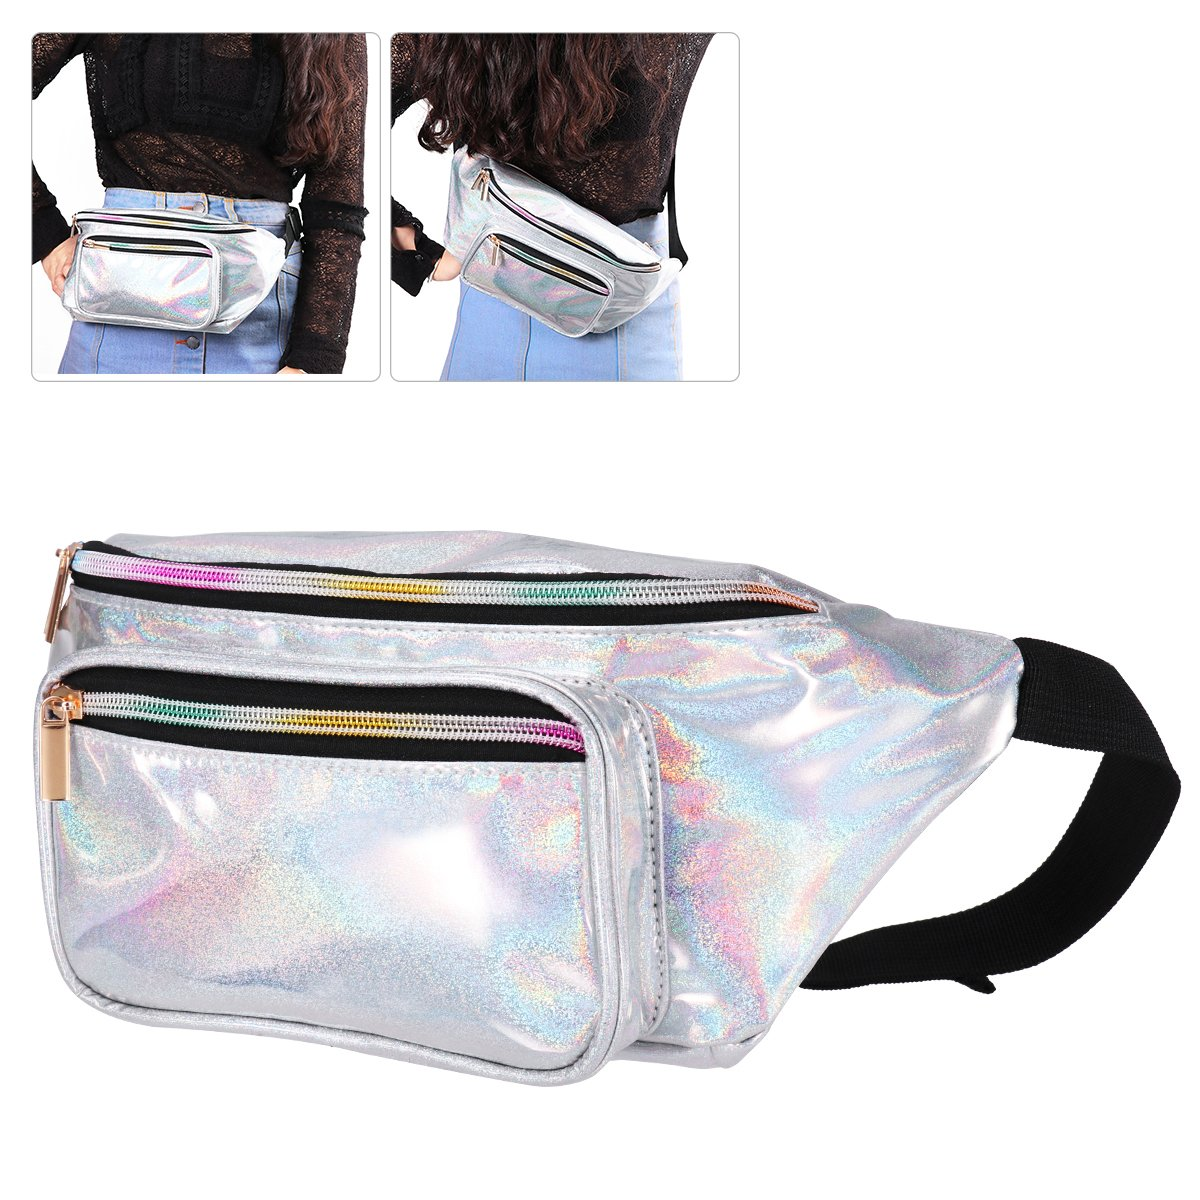 BESTOYARD Unisex Fashion Waist Bag Shiny Fanny Pack Belt Bag Waist Pouch Travel Running Cycling Sports Bag